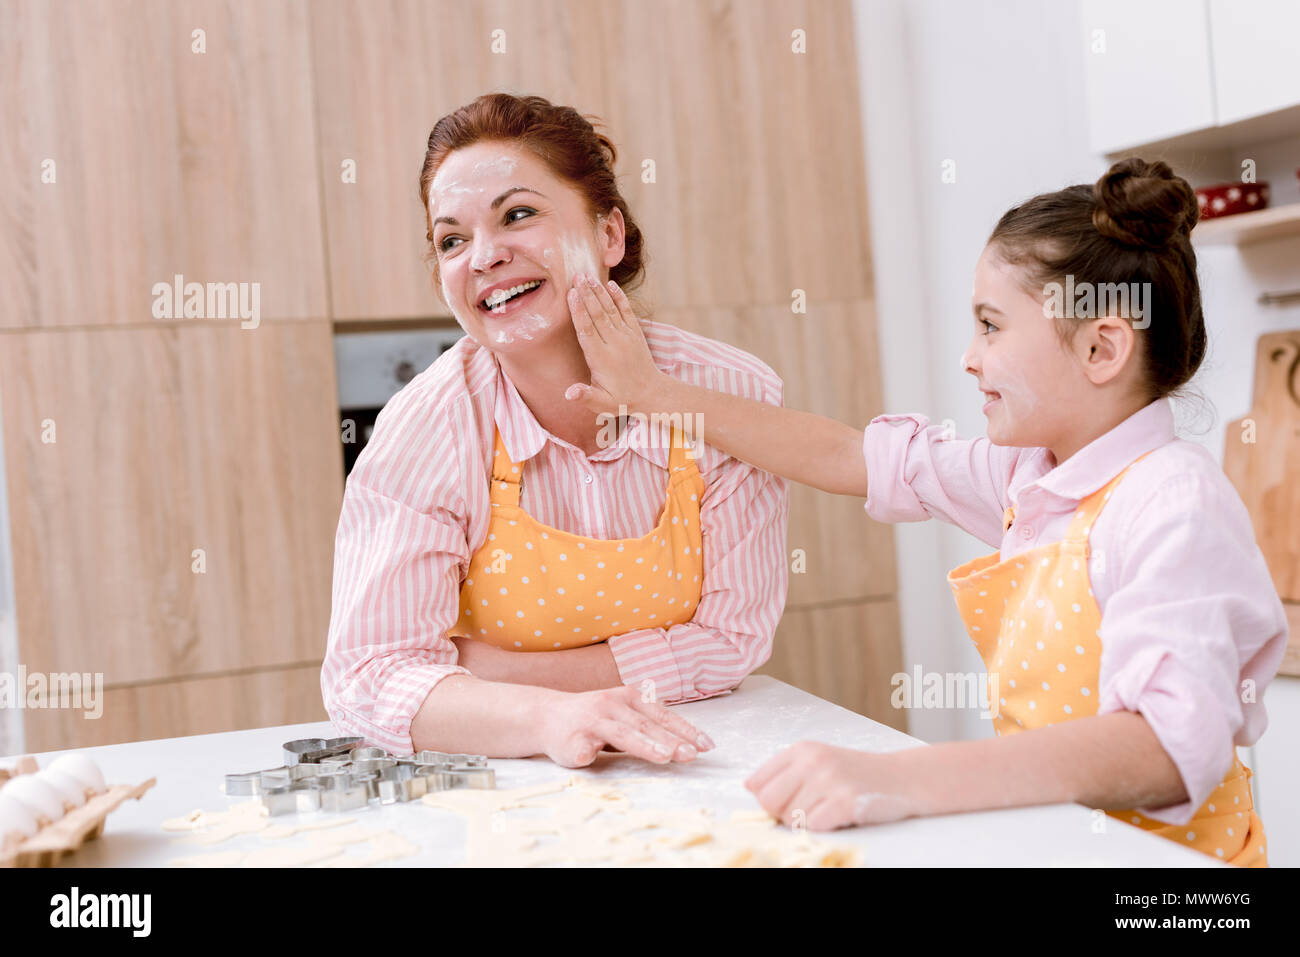 happy grandmother and little granddaughter playing with flour at kitchen while cooking - Stock Image